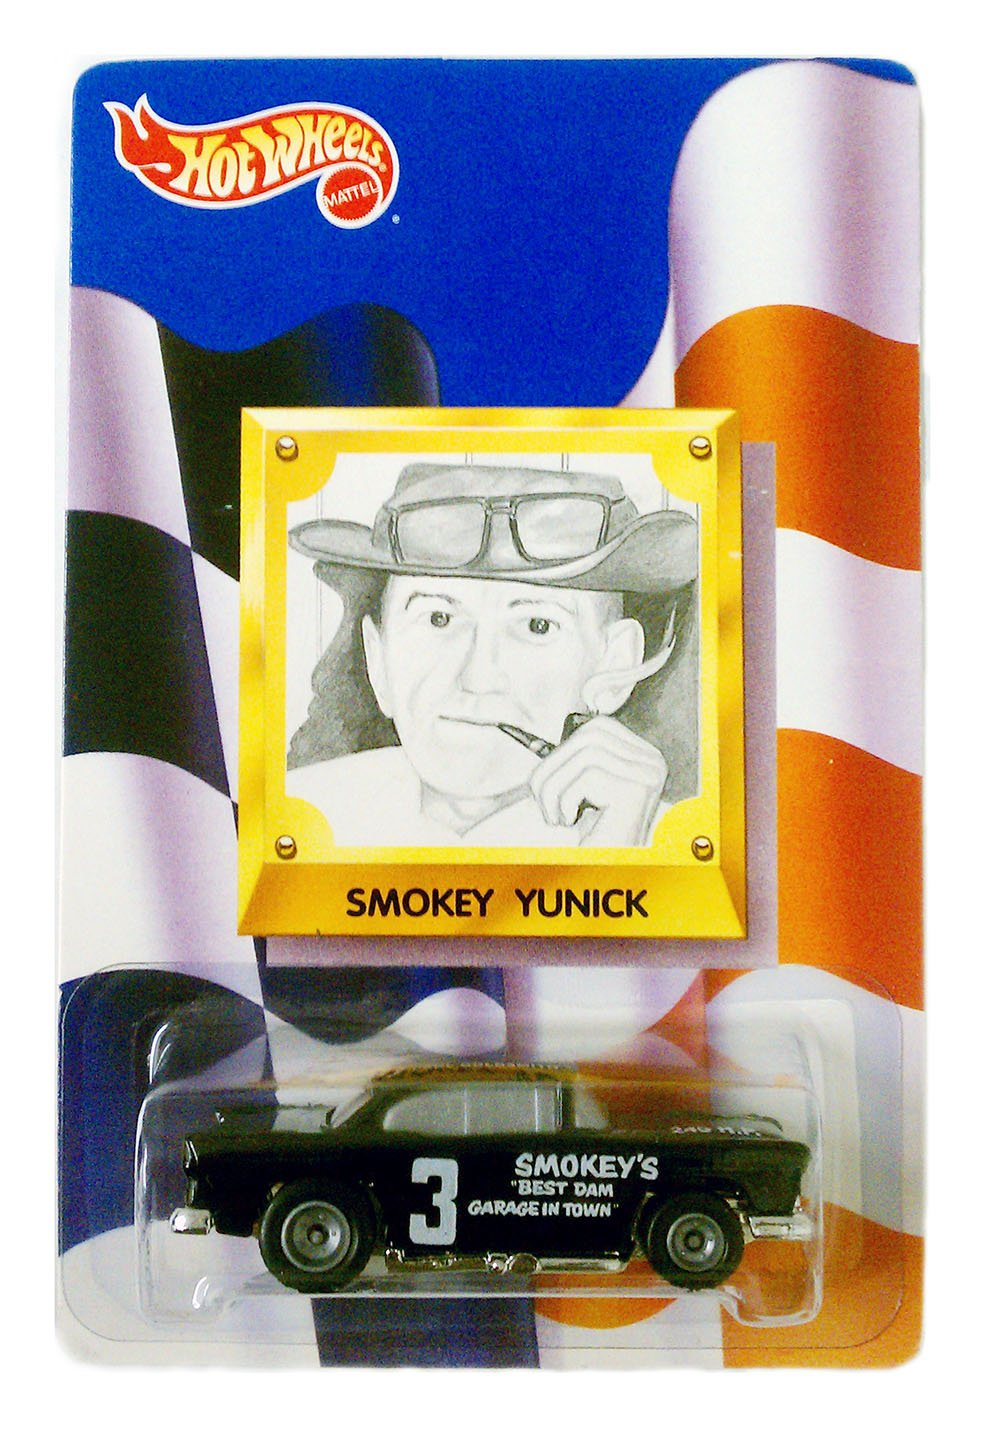 1992 Hot Wheels SMOKEY YUNICK Limited Edition 55 CHEVY #3 Stock Car